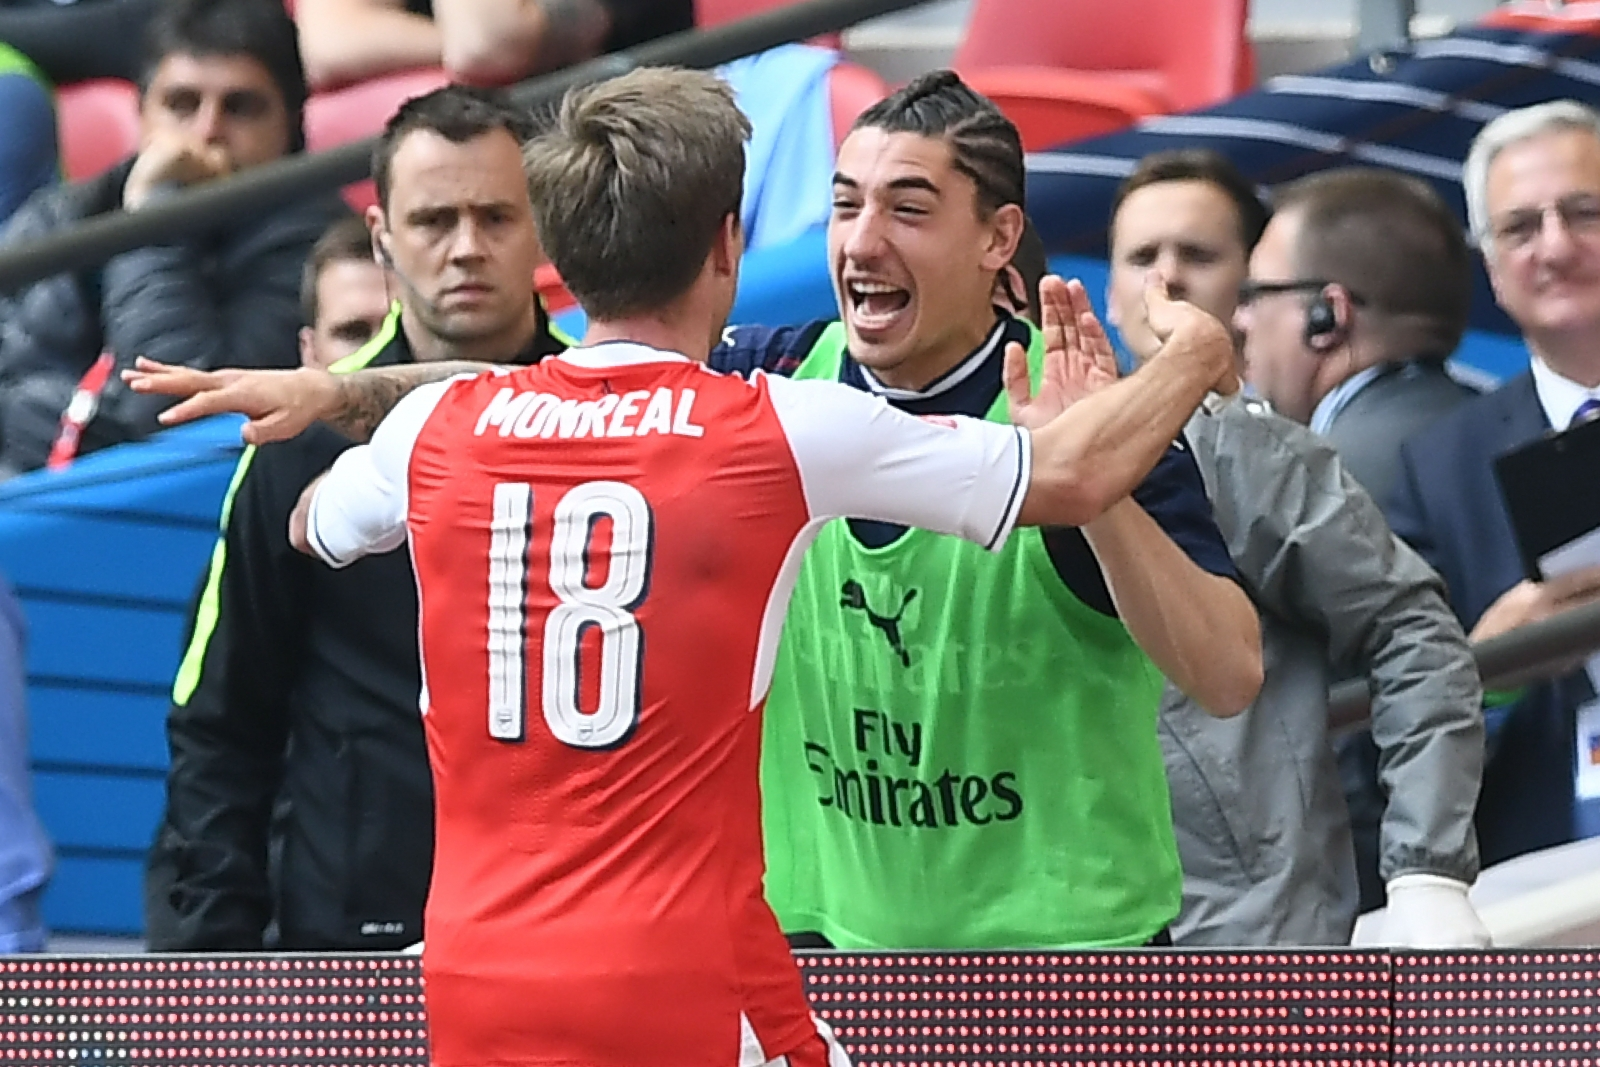 Arsenal beat City to reach FA Cup final with Chelsea